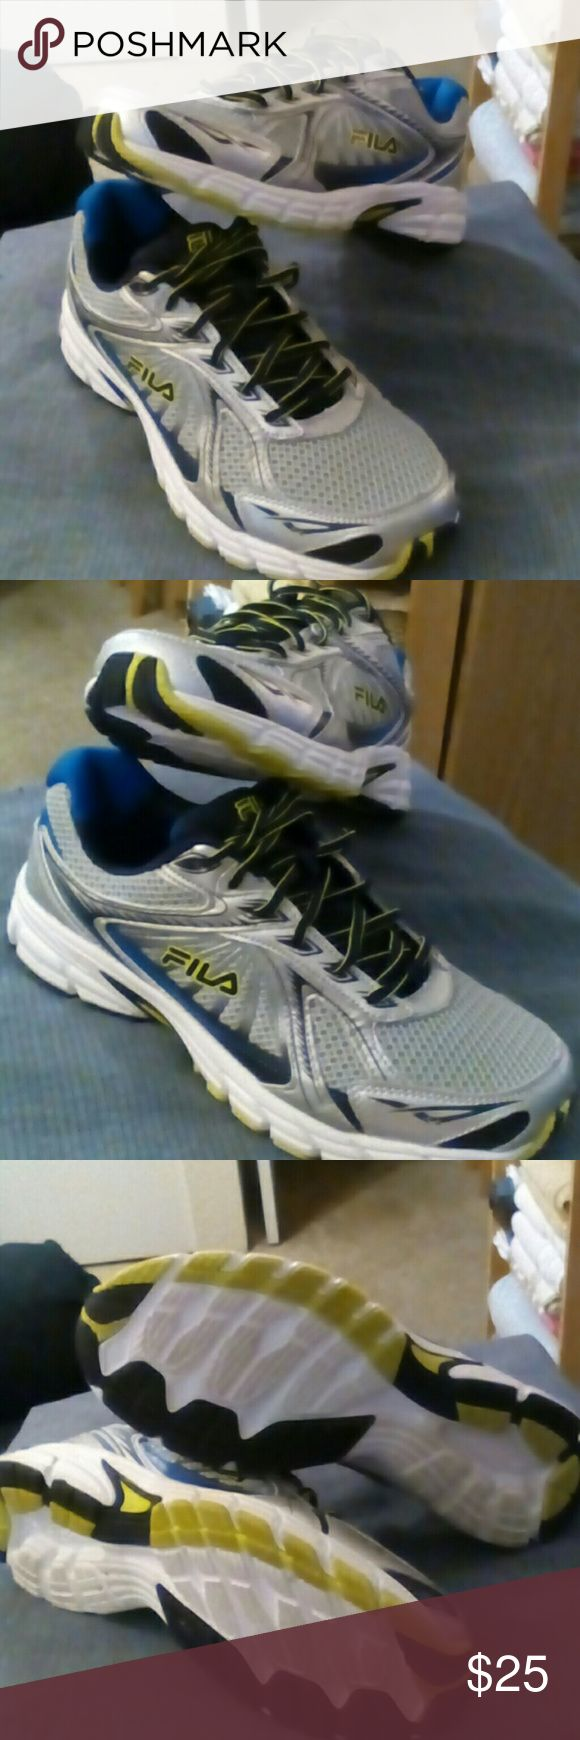 Men's Fila Running Shoes They r in EUC. Worn once and hubby decided their not his style. So I'm selling them.  The colors r cool. Their black, grey, blue and bright neon green. I'm sure ur going to love them. Fila Shoes Athletic Shoes